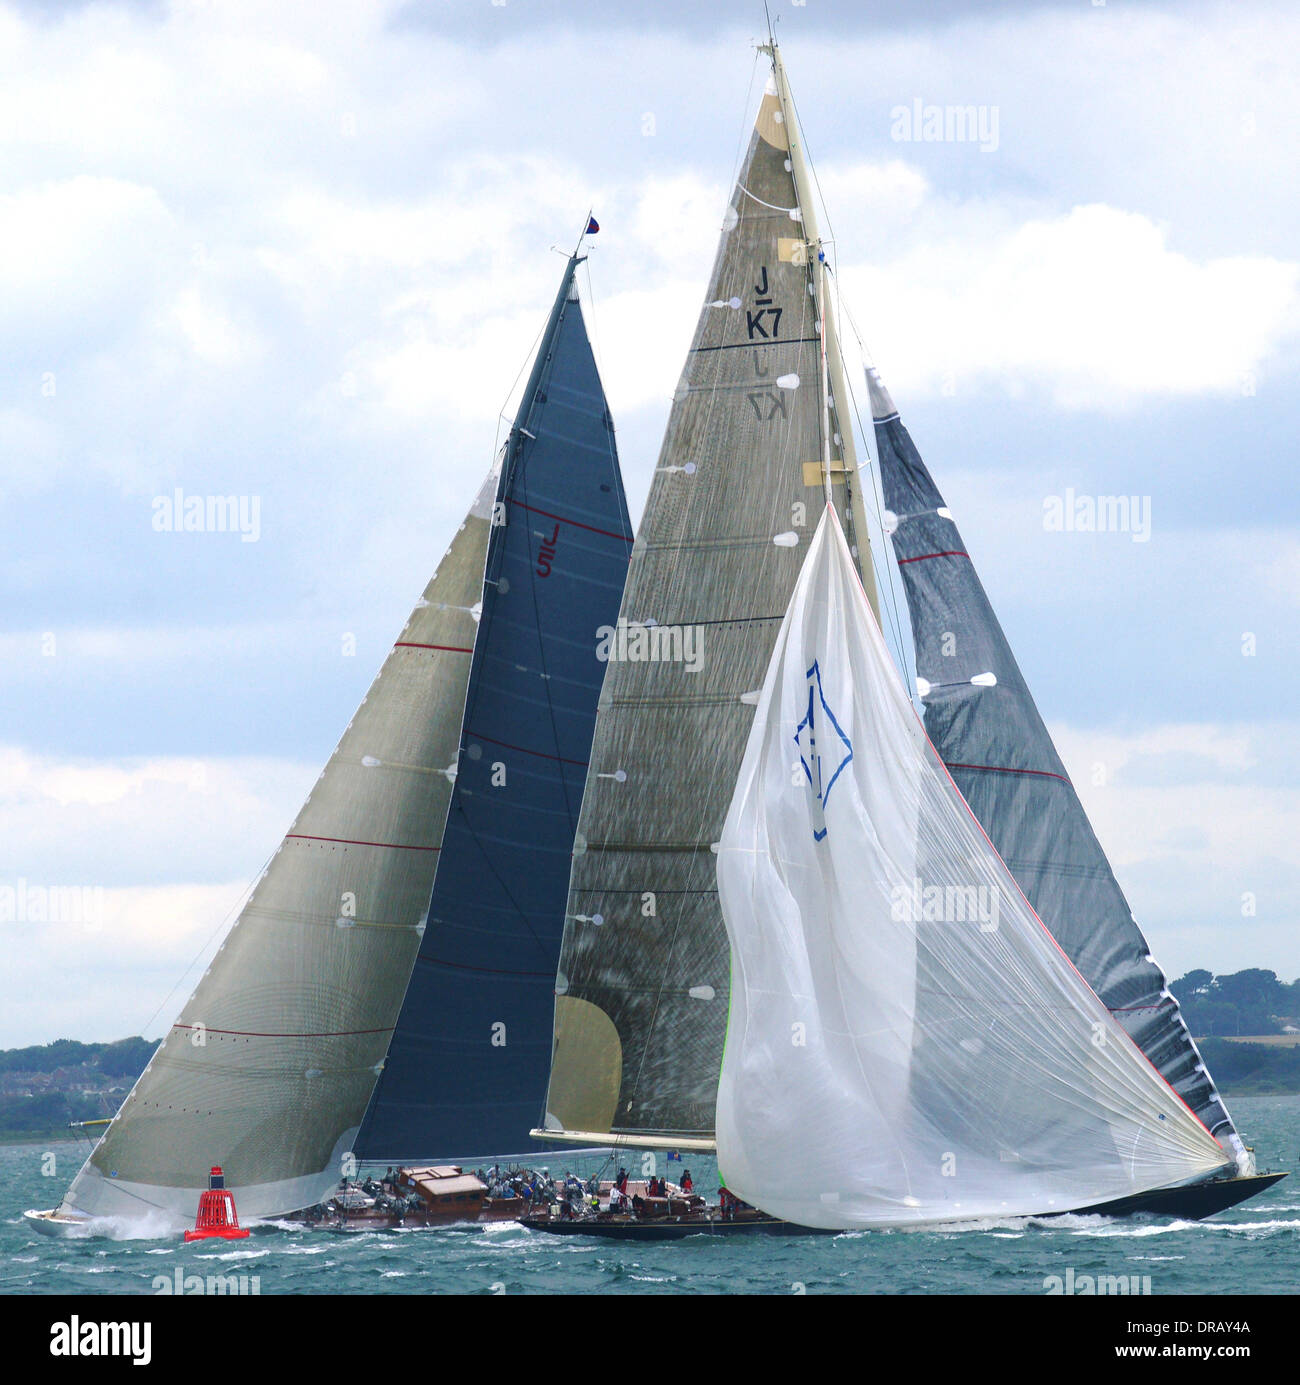 2012 J CLASS Yachts in SOLENT REGATTA - J Class - K7 Velsheda & J5 Ranger off Isle of Wight, UK Stock Photo